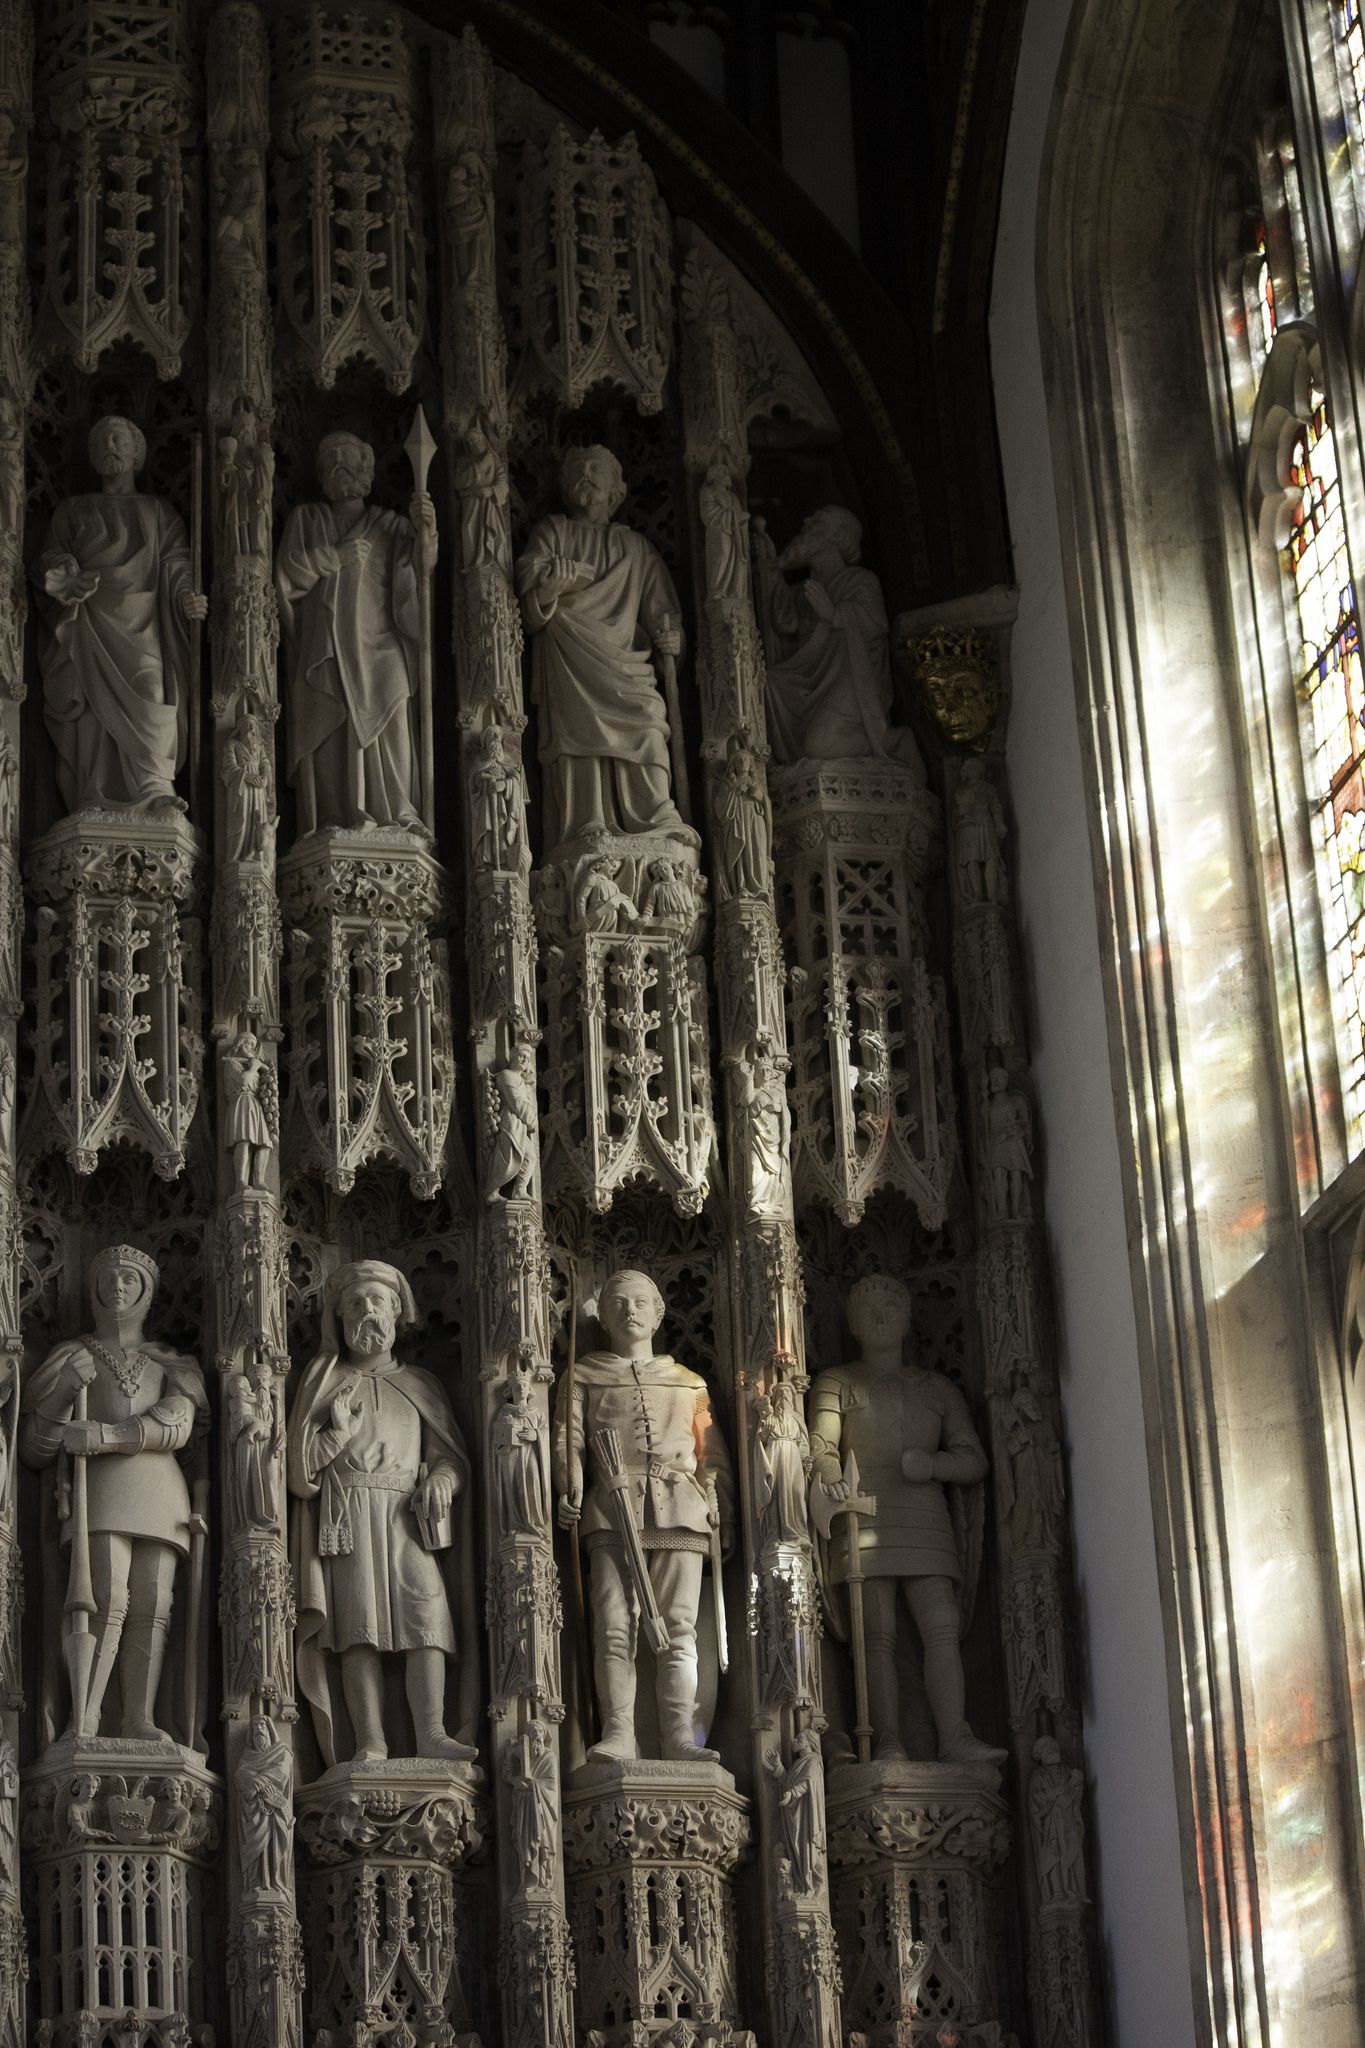 https://flic.kr/p/GacpxX | Light on the Reredos | The reredos of the Chapel of All Souls College, Oxford dates from c. 1447. Its niches contain 19th-century statues of saints, bishops, and monarchs.